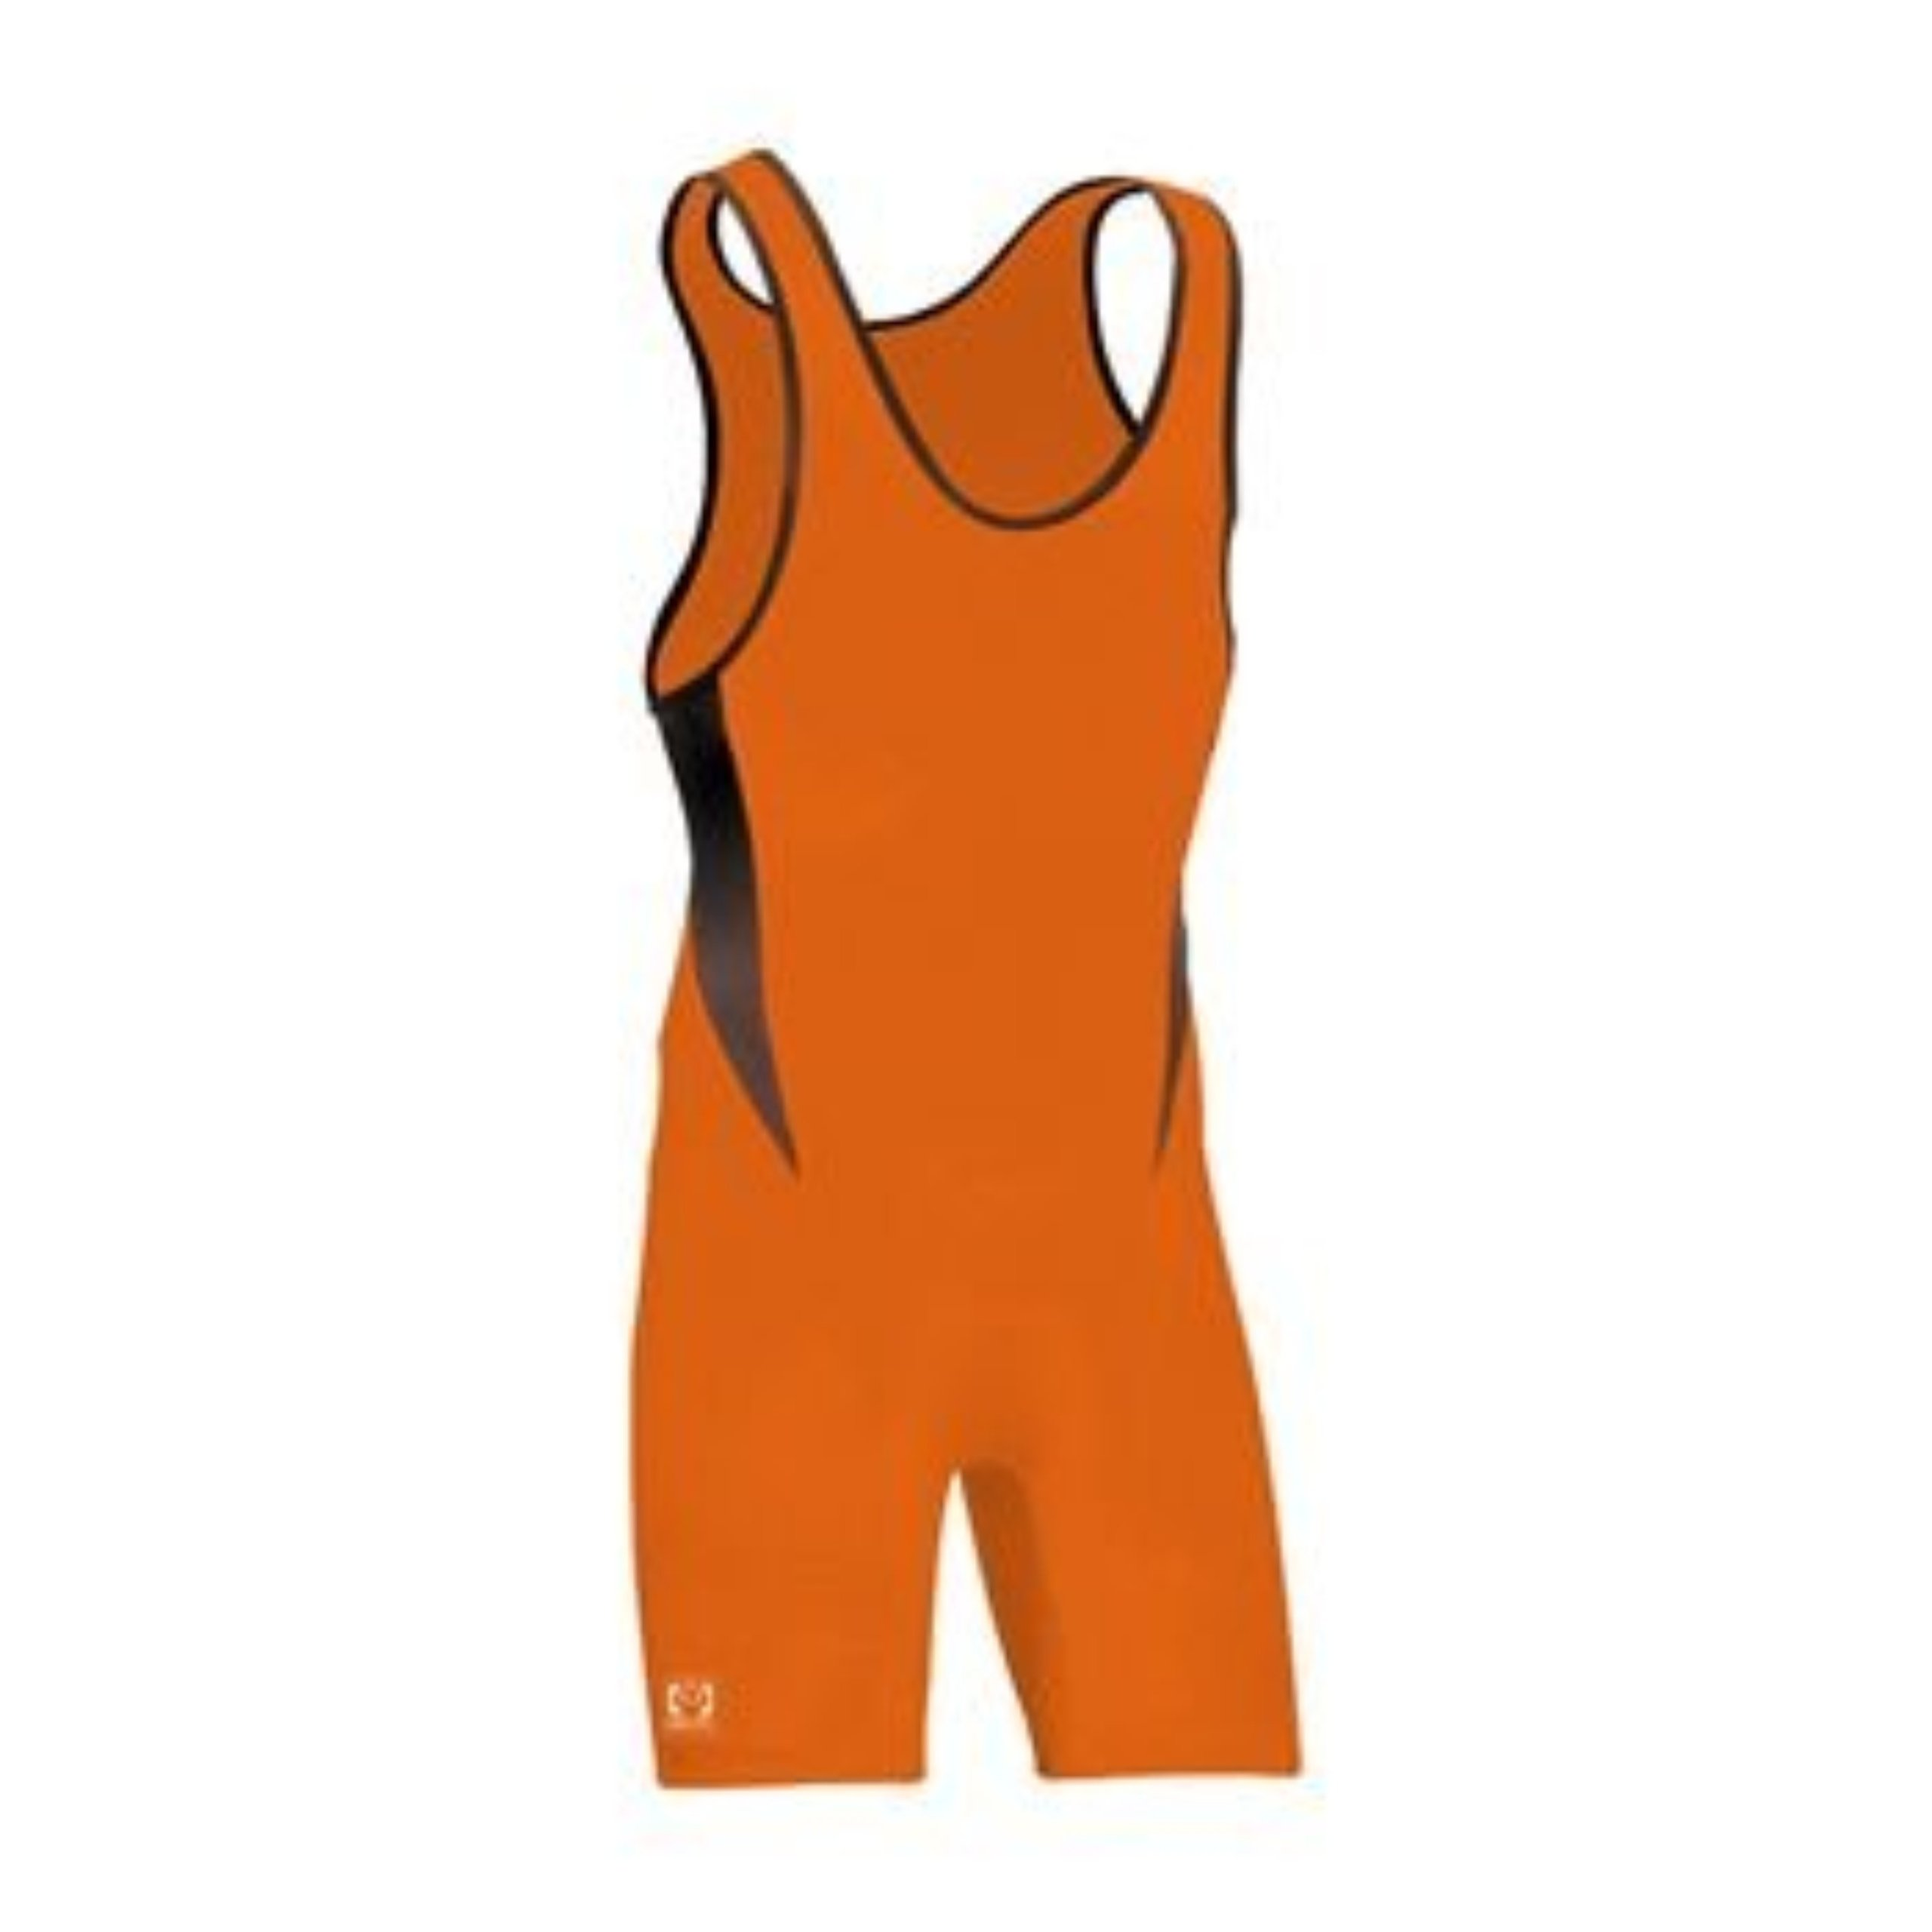 Brute Bolt Wrestling Singlet - SIZE: X-Small, COLOR: Orange/Black [Apparel]